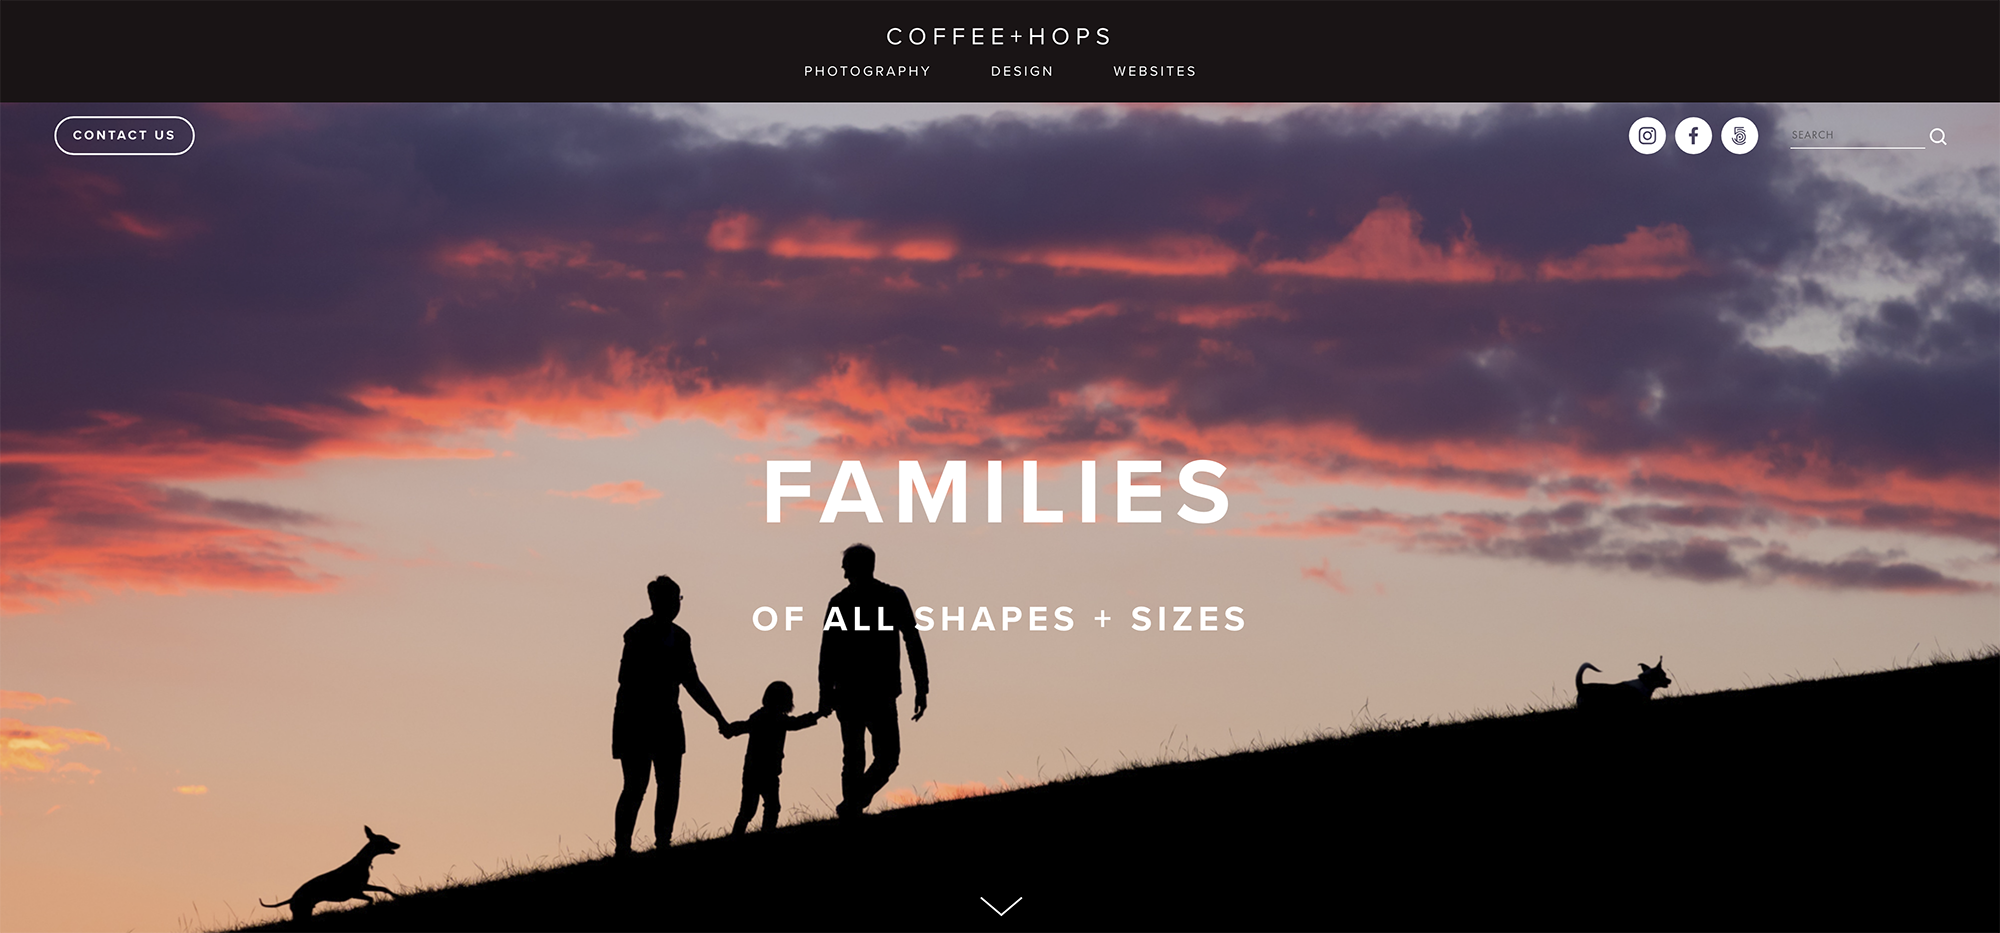 Family Photography — Coffee+Hops